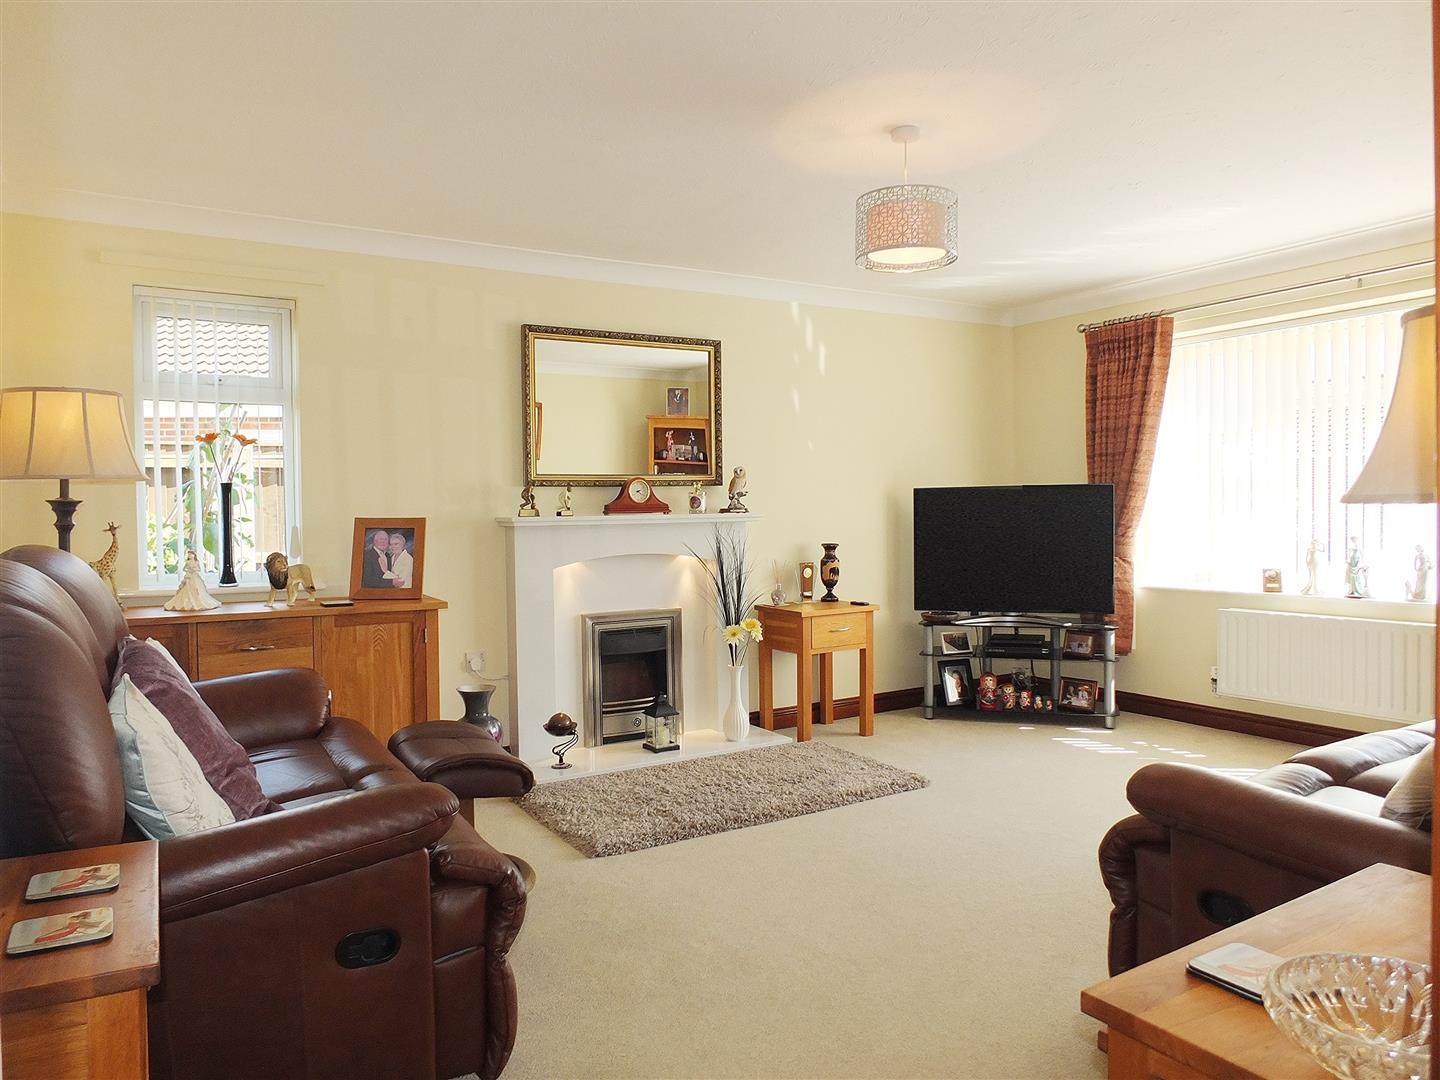 3 bed detached bungalow for sale in Long Sutton Spalding, PE12 9FT 3